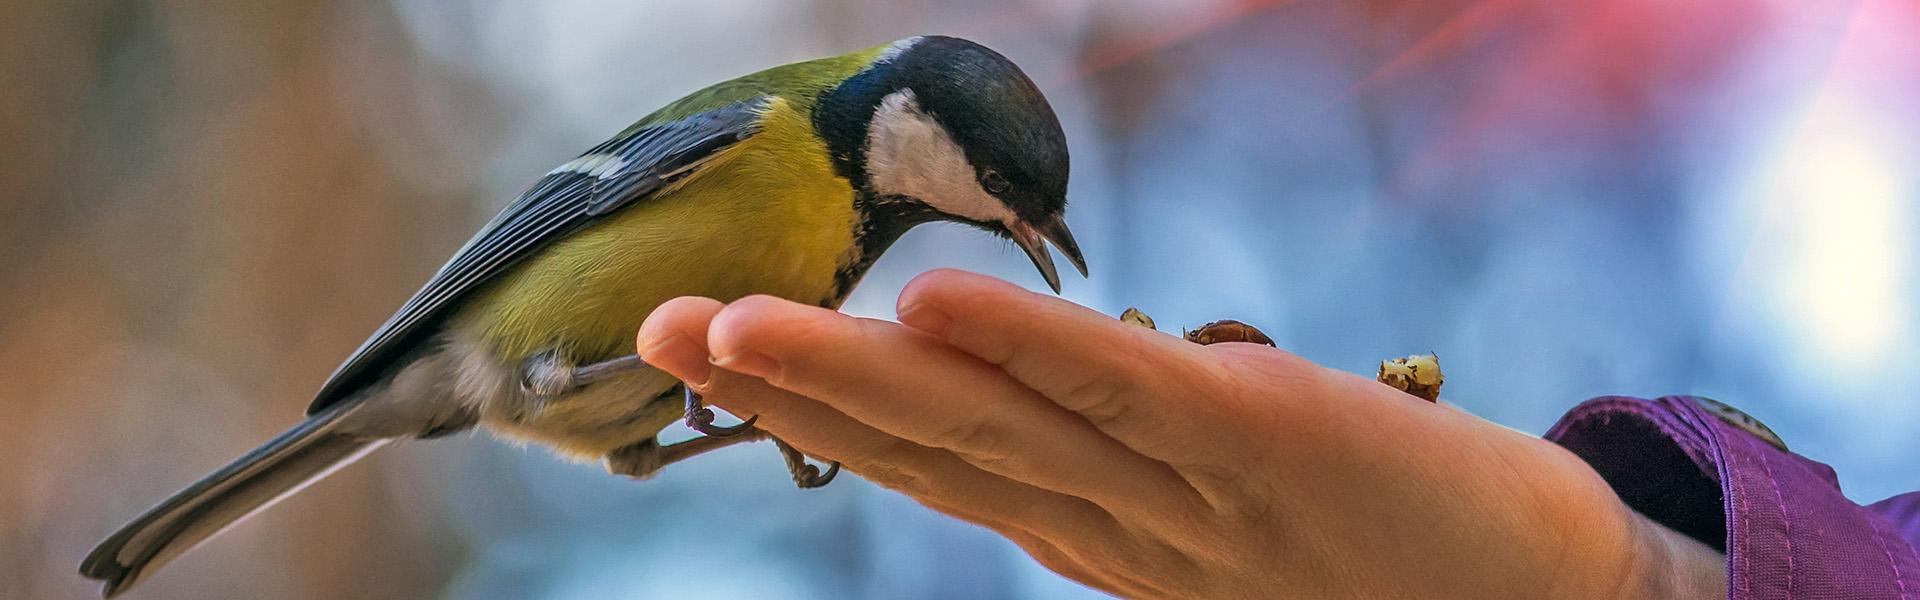 A blue tit feeding from a person's hand